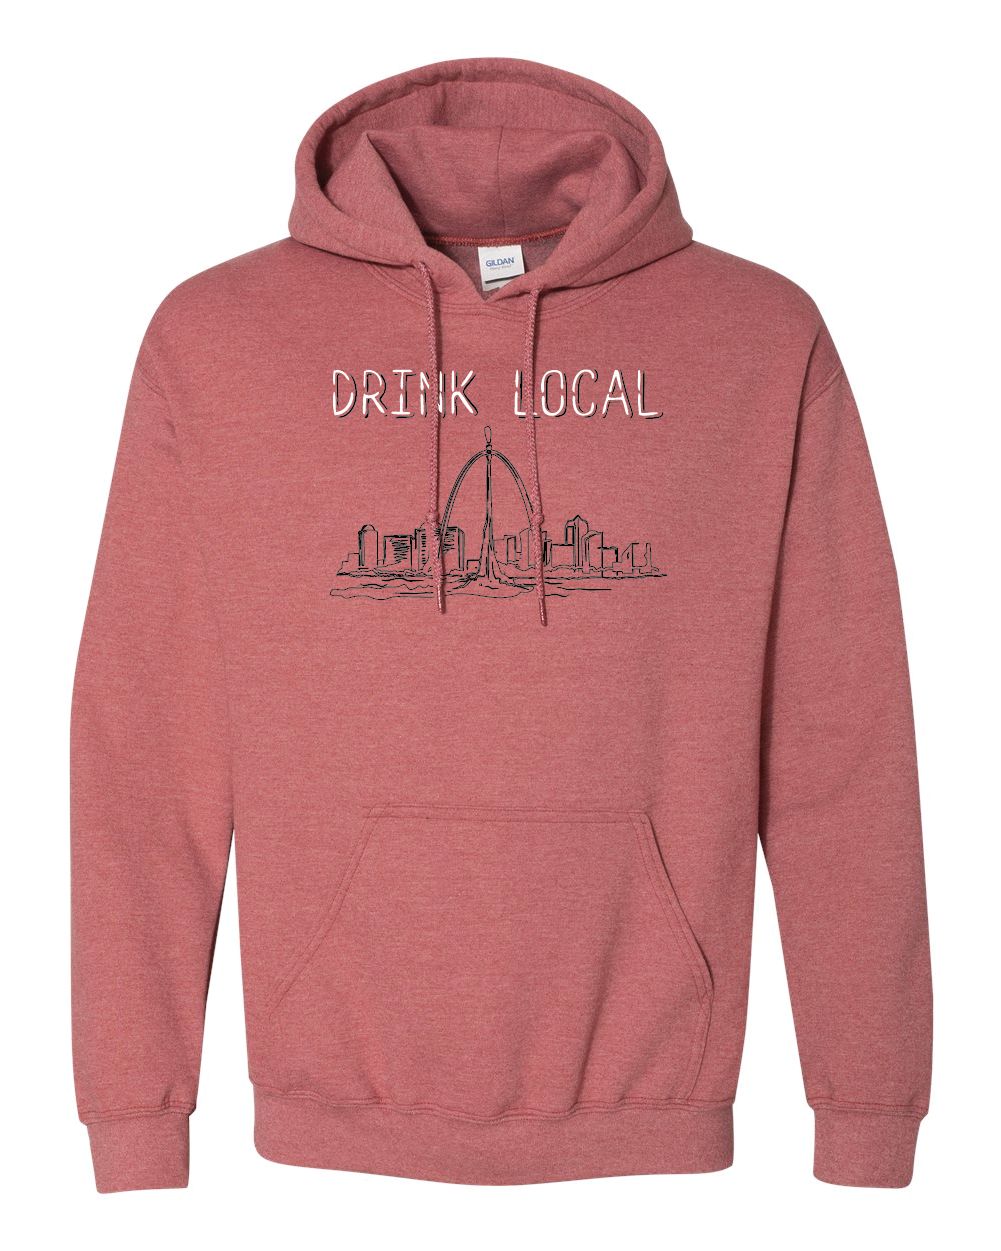 Drink Local - Hoody